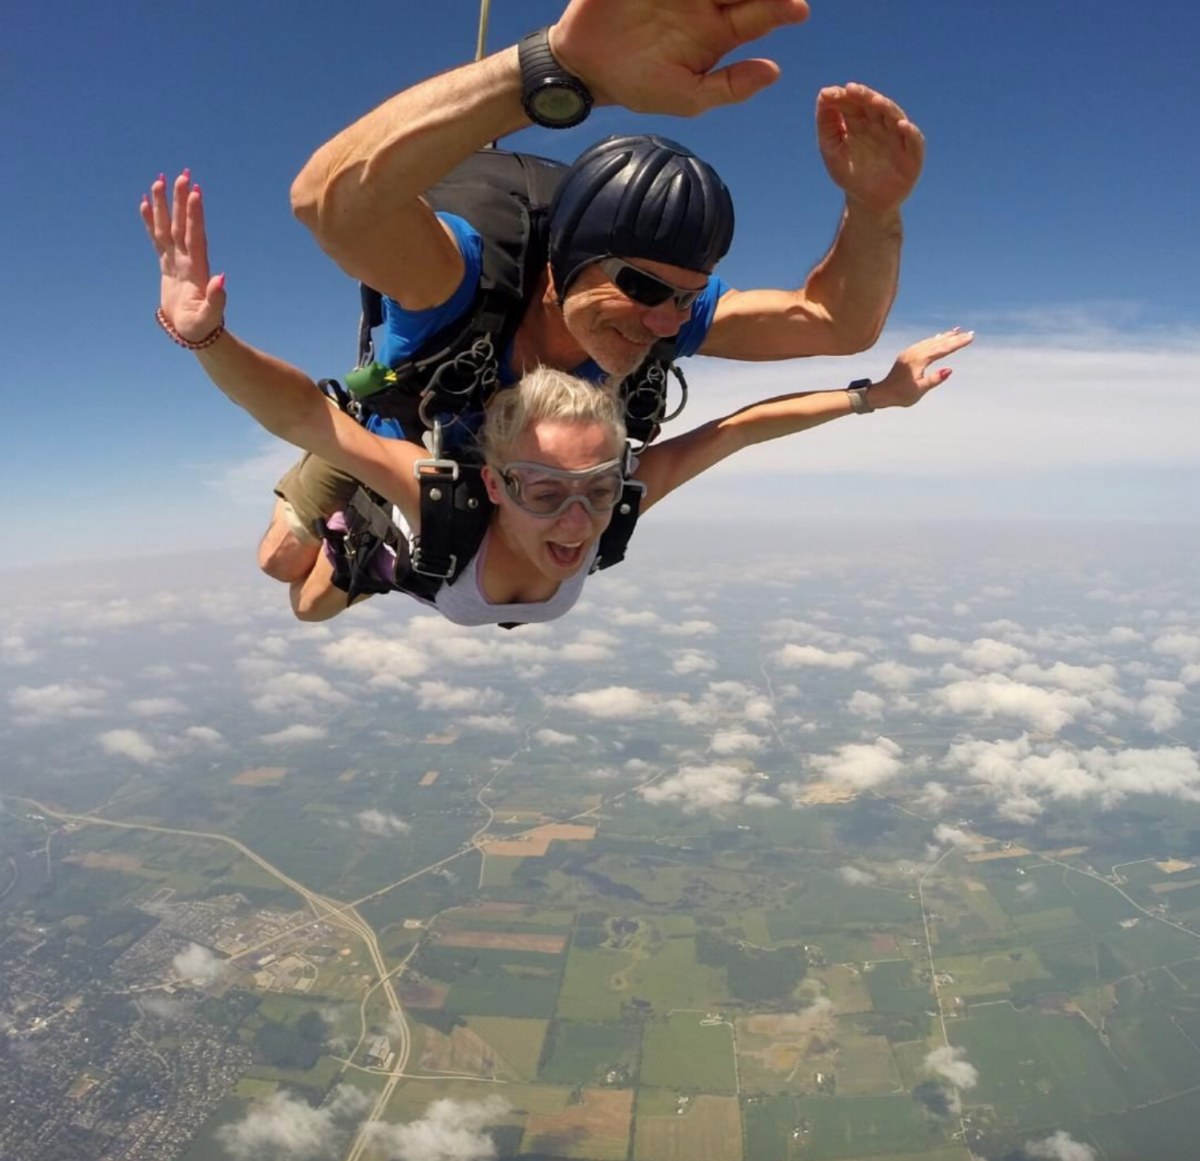 Woman in freefall in a tandem skydive at Wisconsin Skydiving Center near Milwaukee Wisconsin